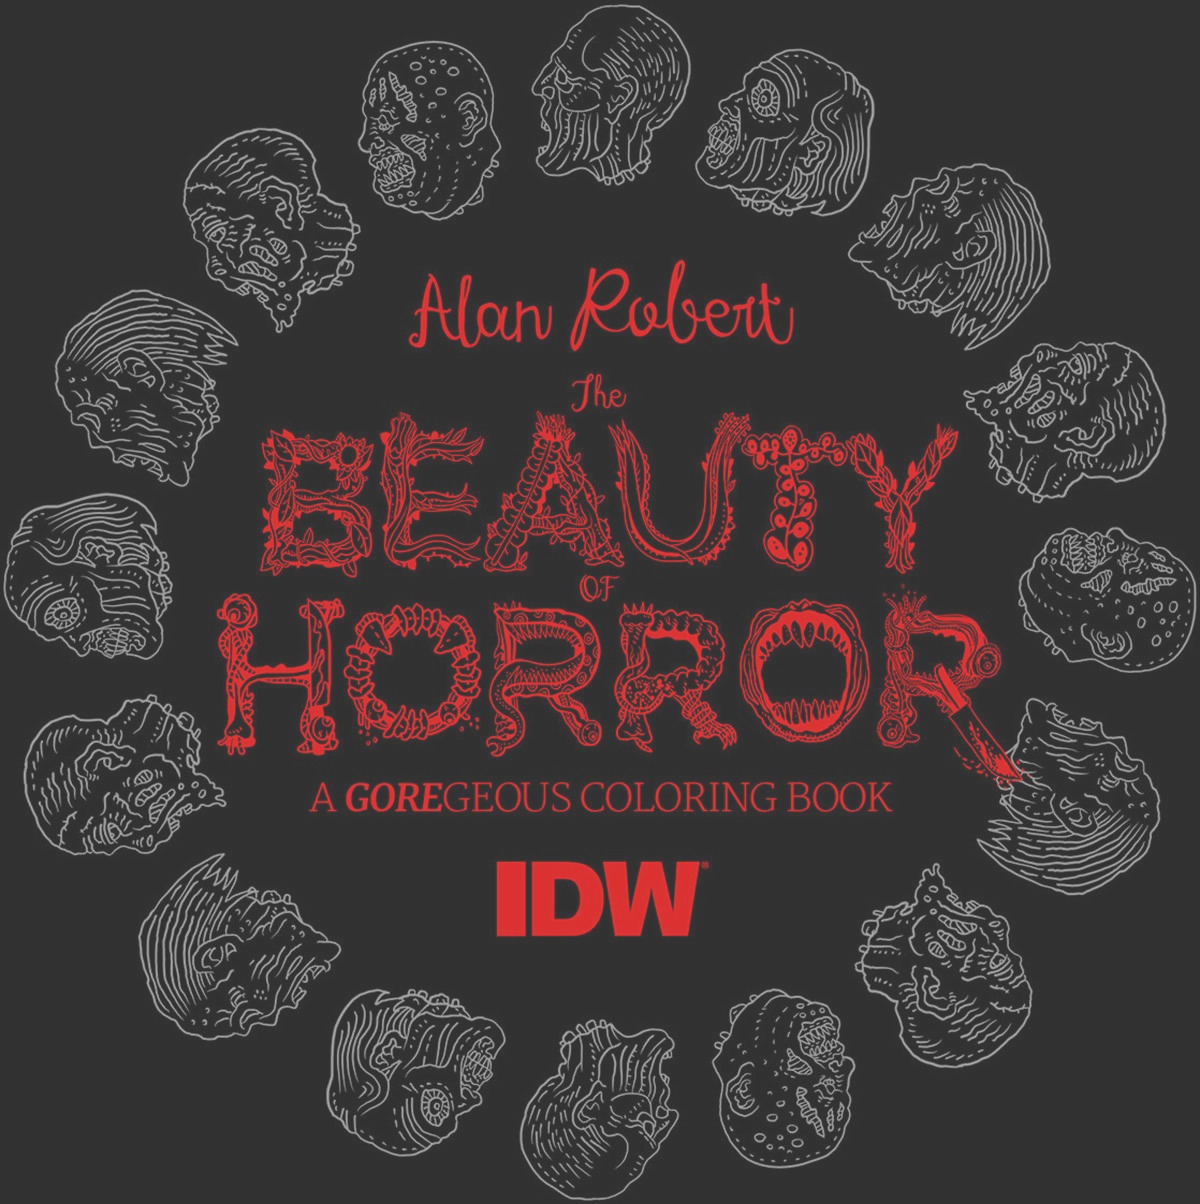 the beauty of horror a goregeous coloring book by alan robert 5